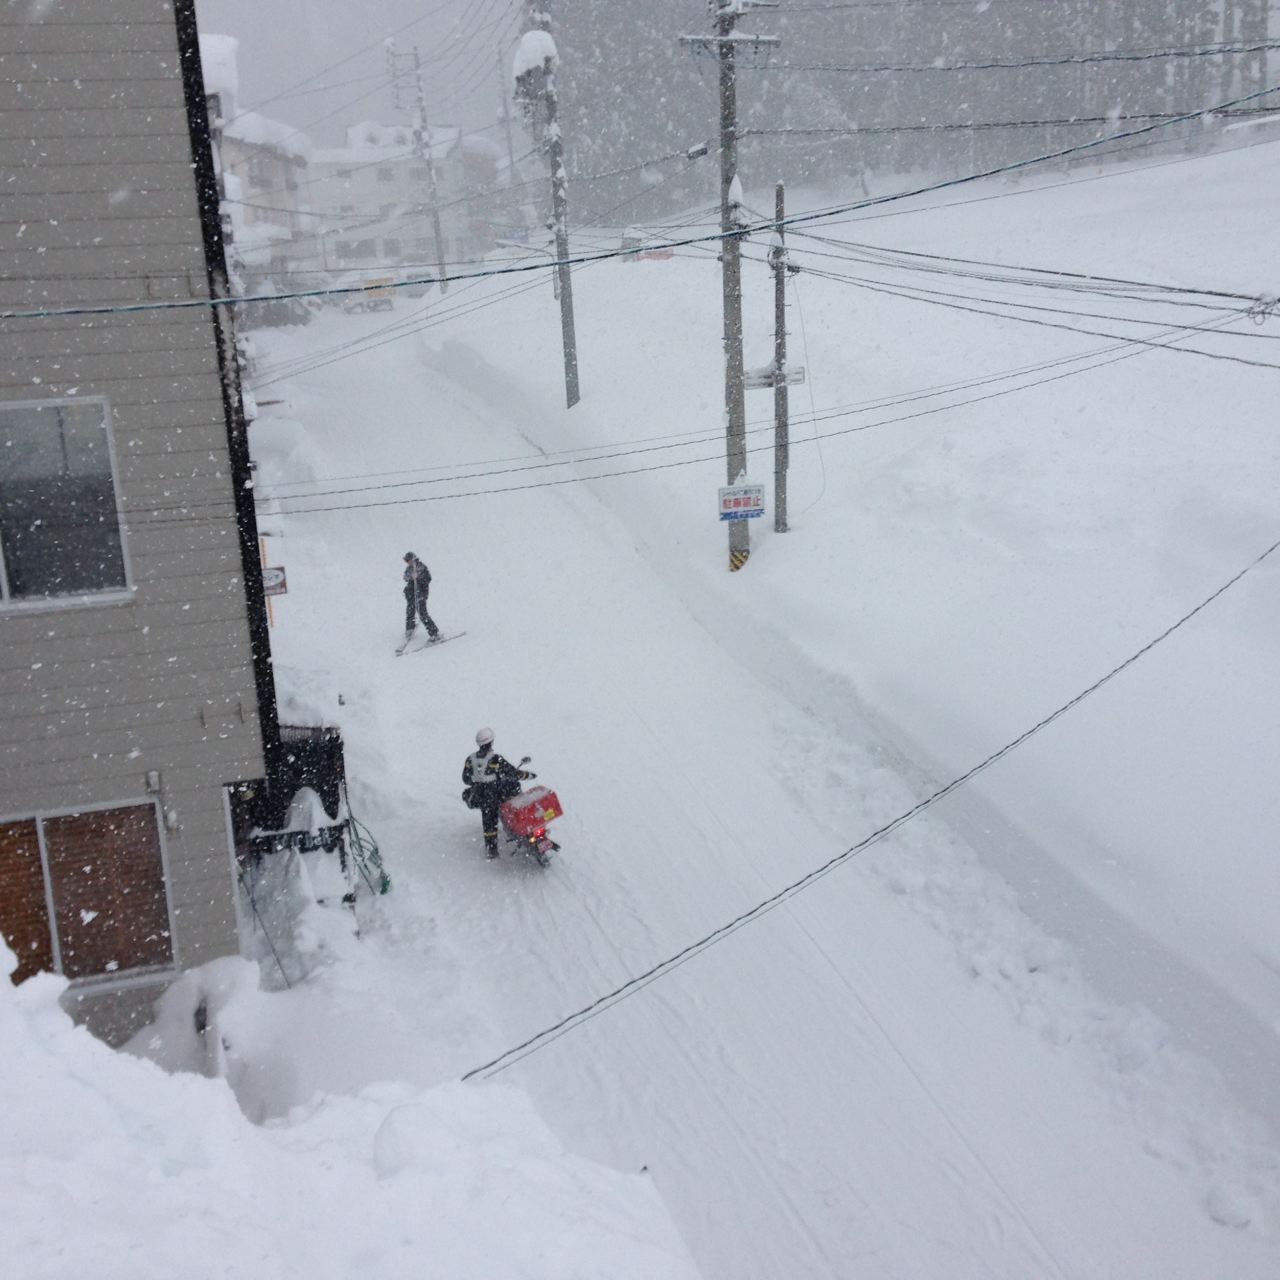 Spare a though for the local Nozawa Postie he delivers Rain, Hail or 3 meters of fresh snow...